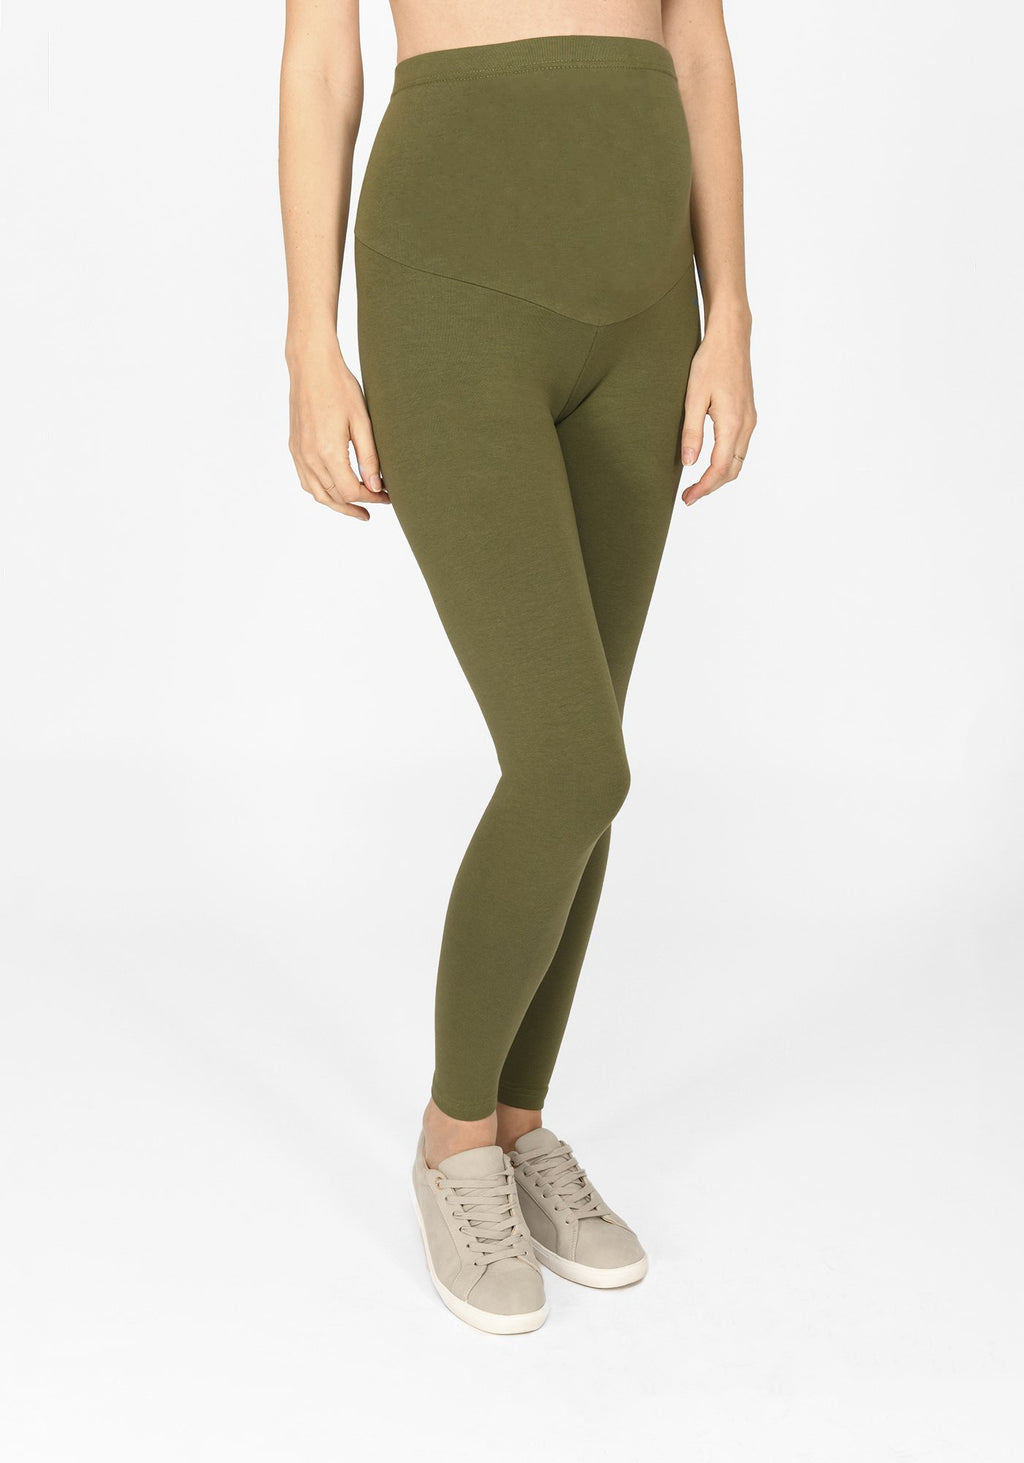 khaki green full length maternity leggings 1